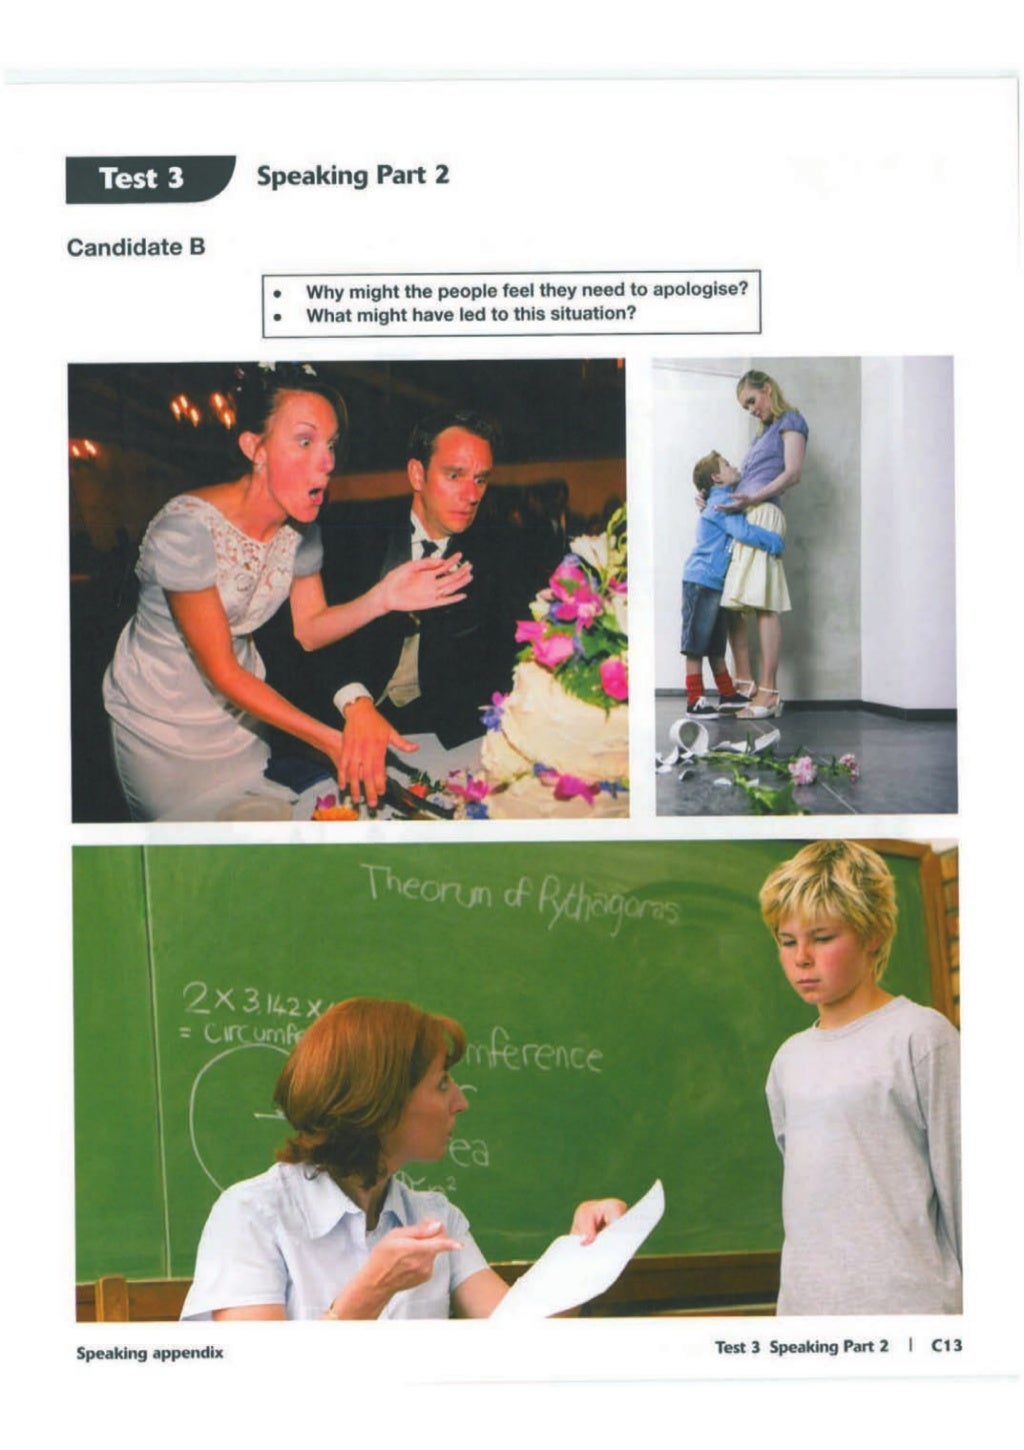 Advanced trainer 6 practice tests with answers book4joy (1) page 270